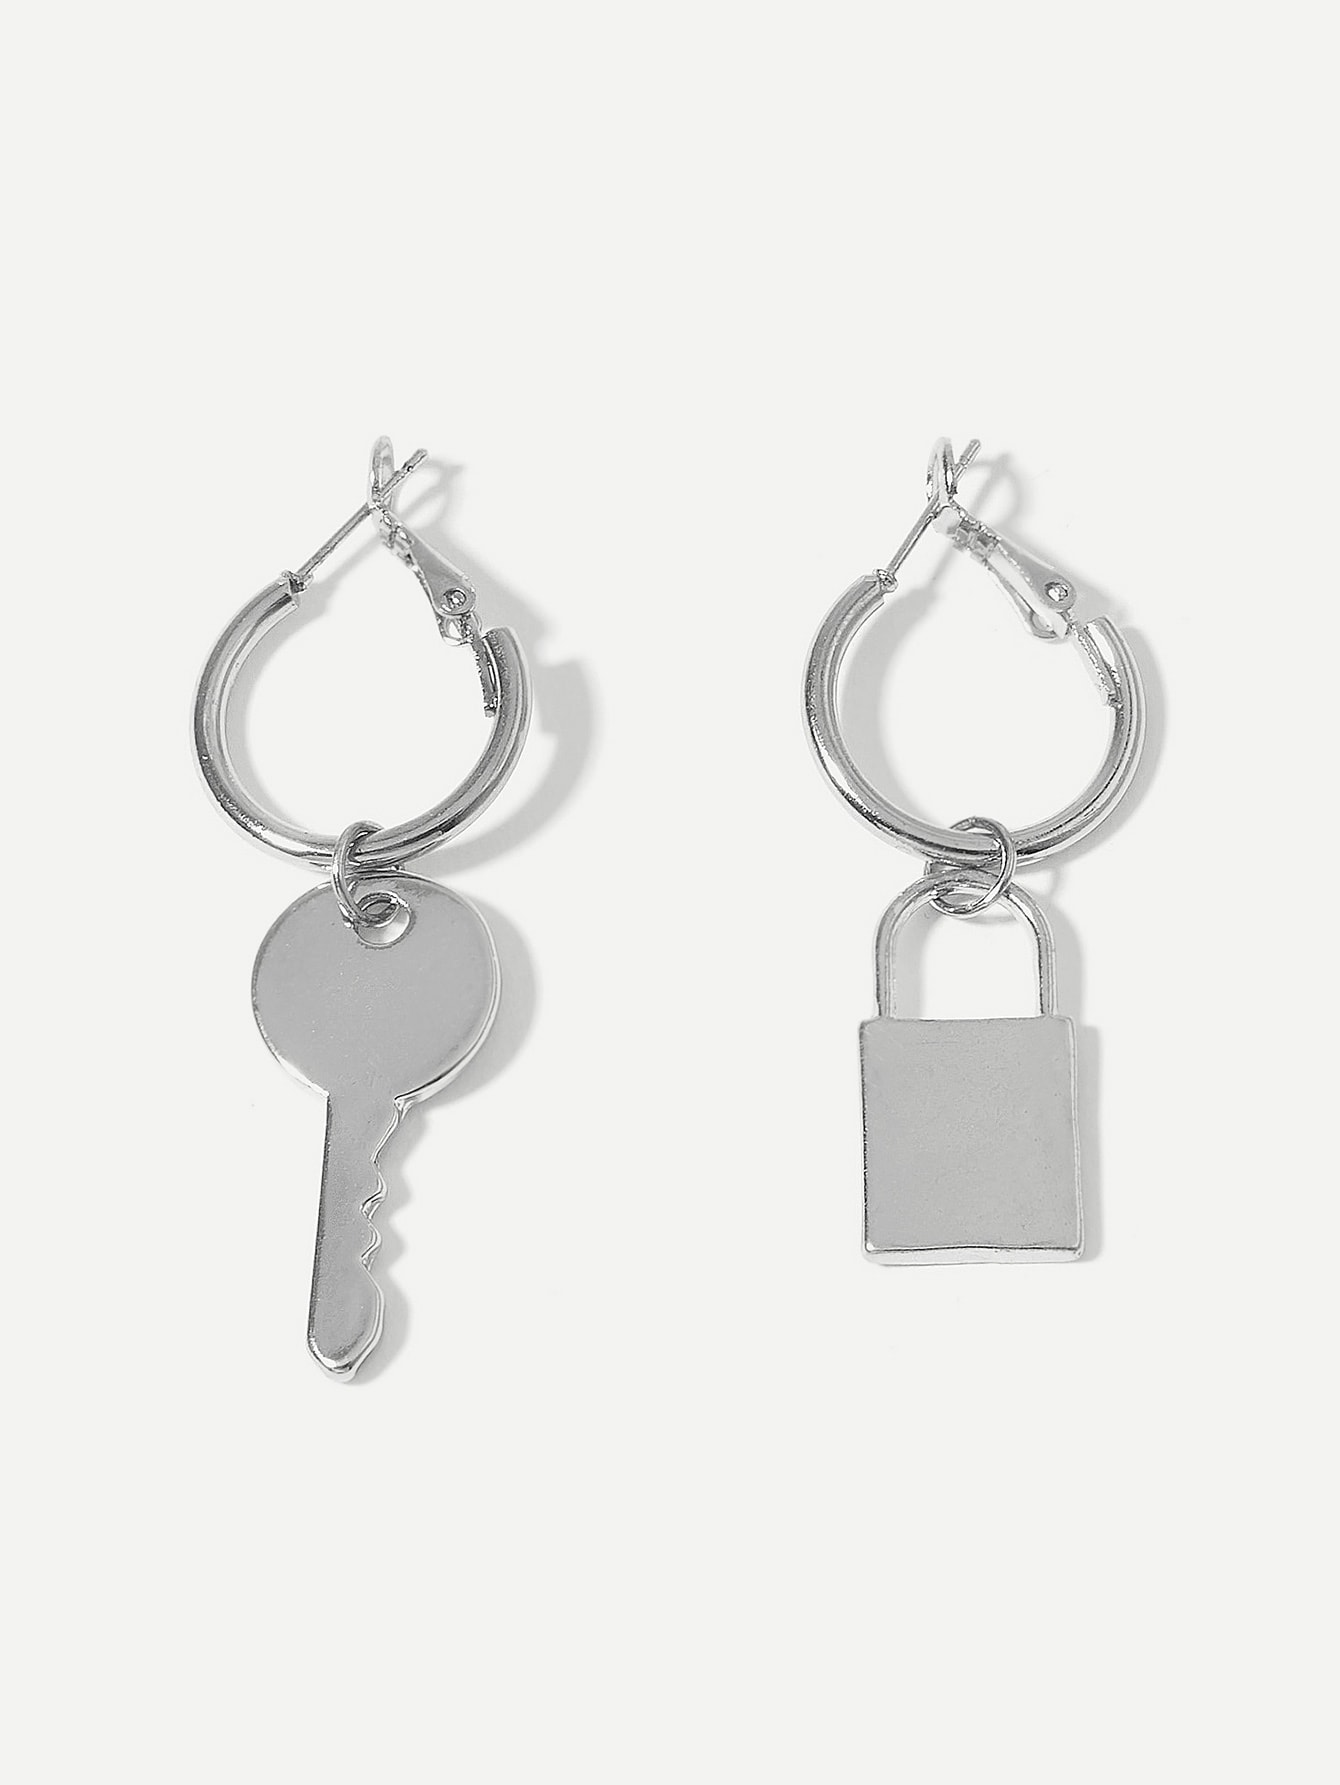 Lock & Key Mismatched Drop Earrings 1pair